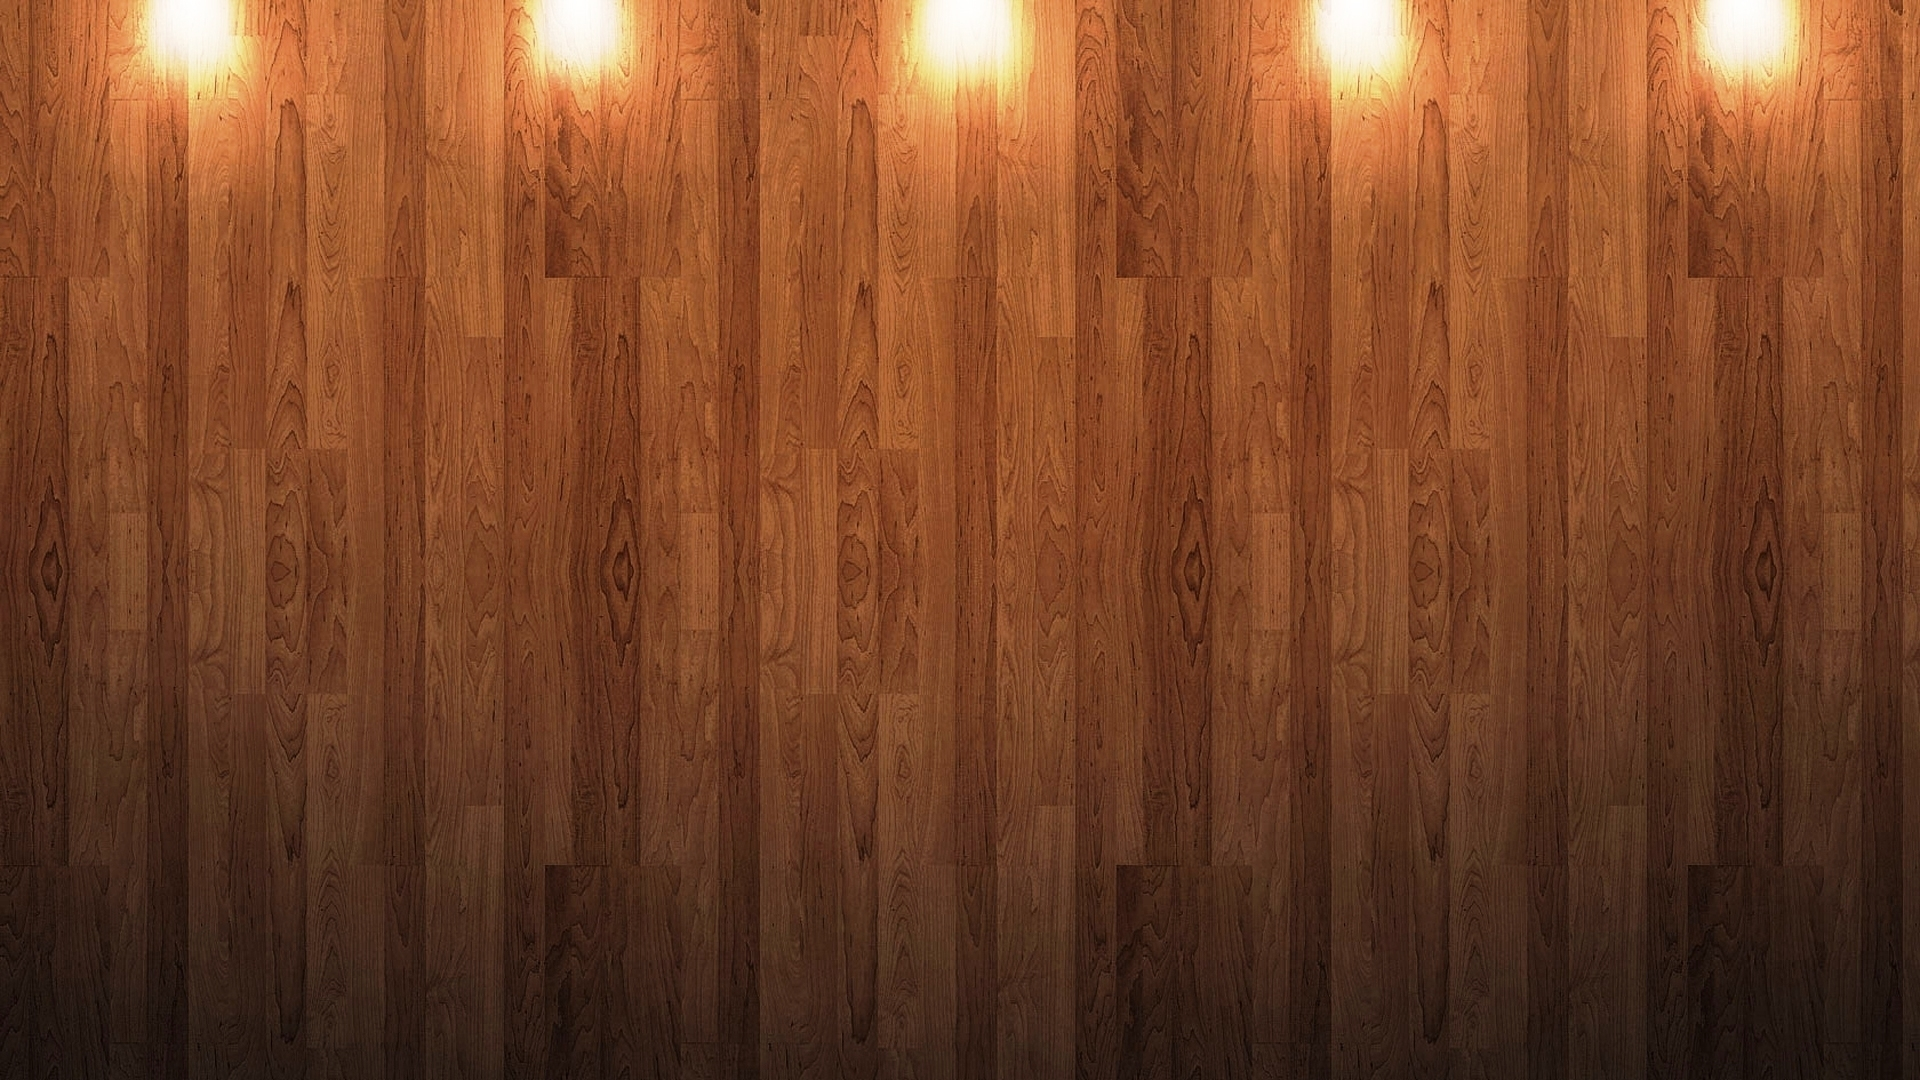 Title Light Wood Wallpapers Hd